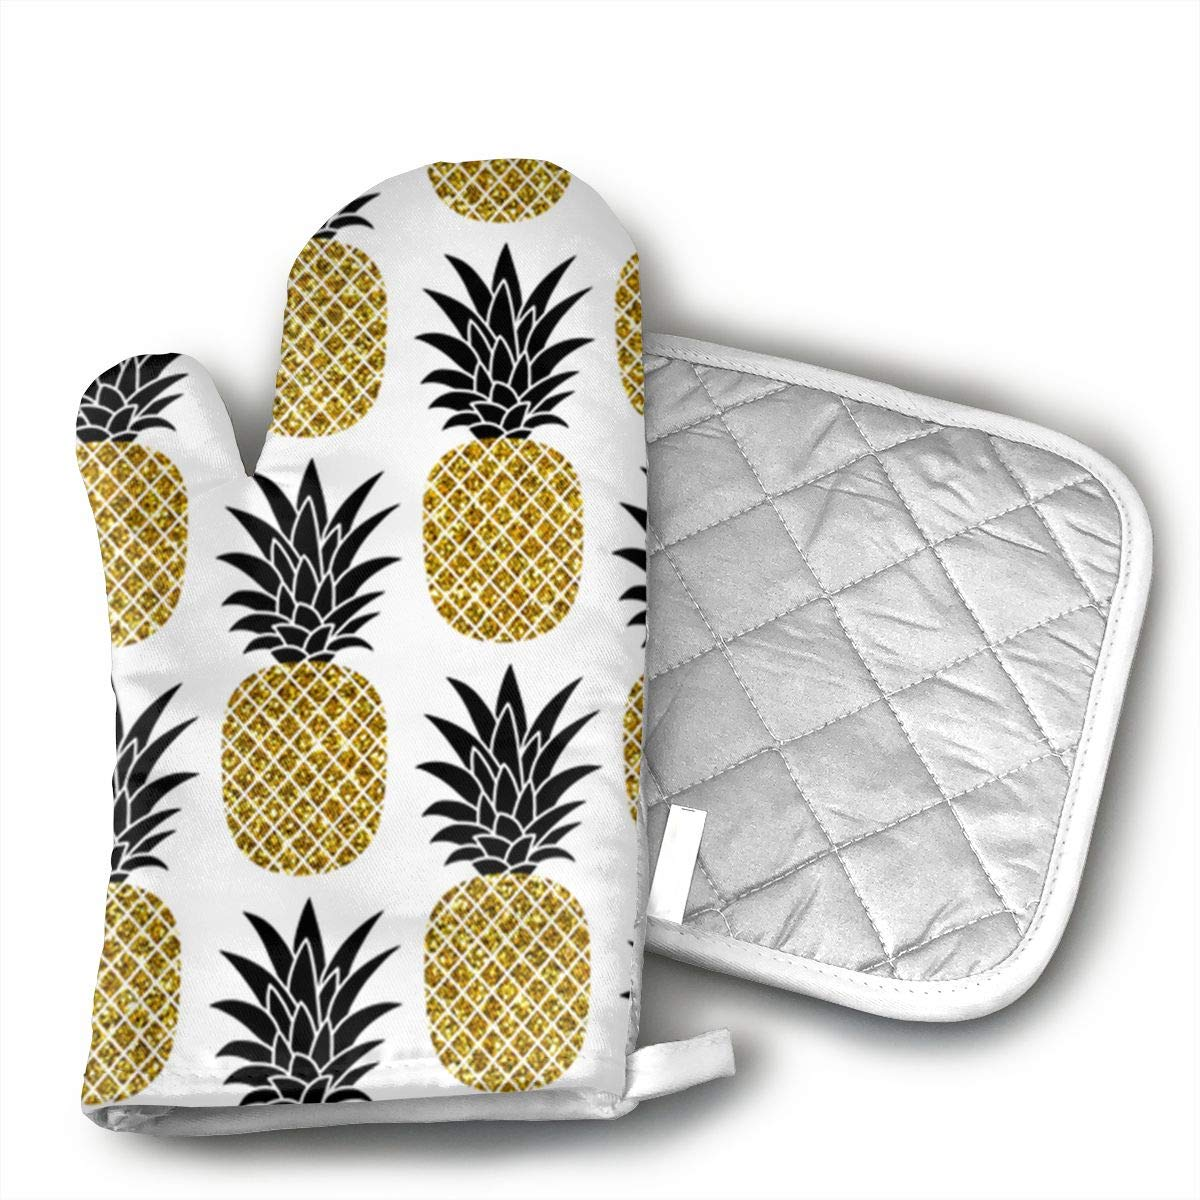 Mnsuh9 Glitter Pineapples Oven Mitt and Pot Holder or Oven Gloves-100% Cotton, High Heat Resistance,